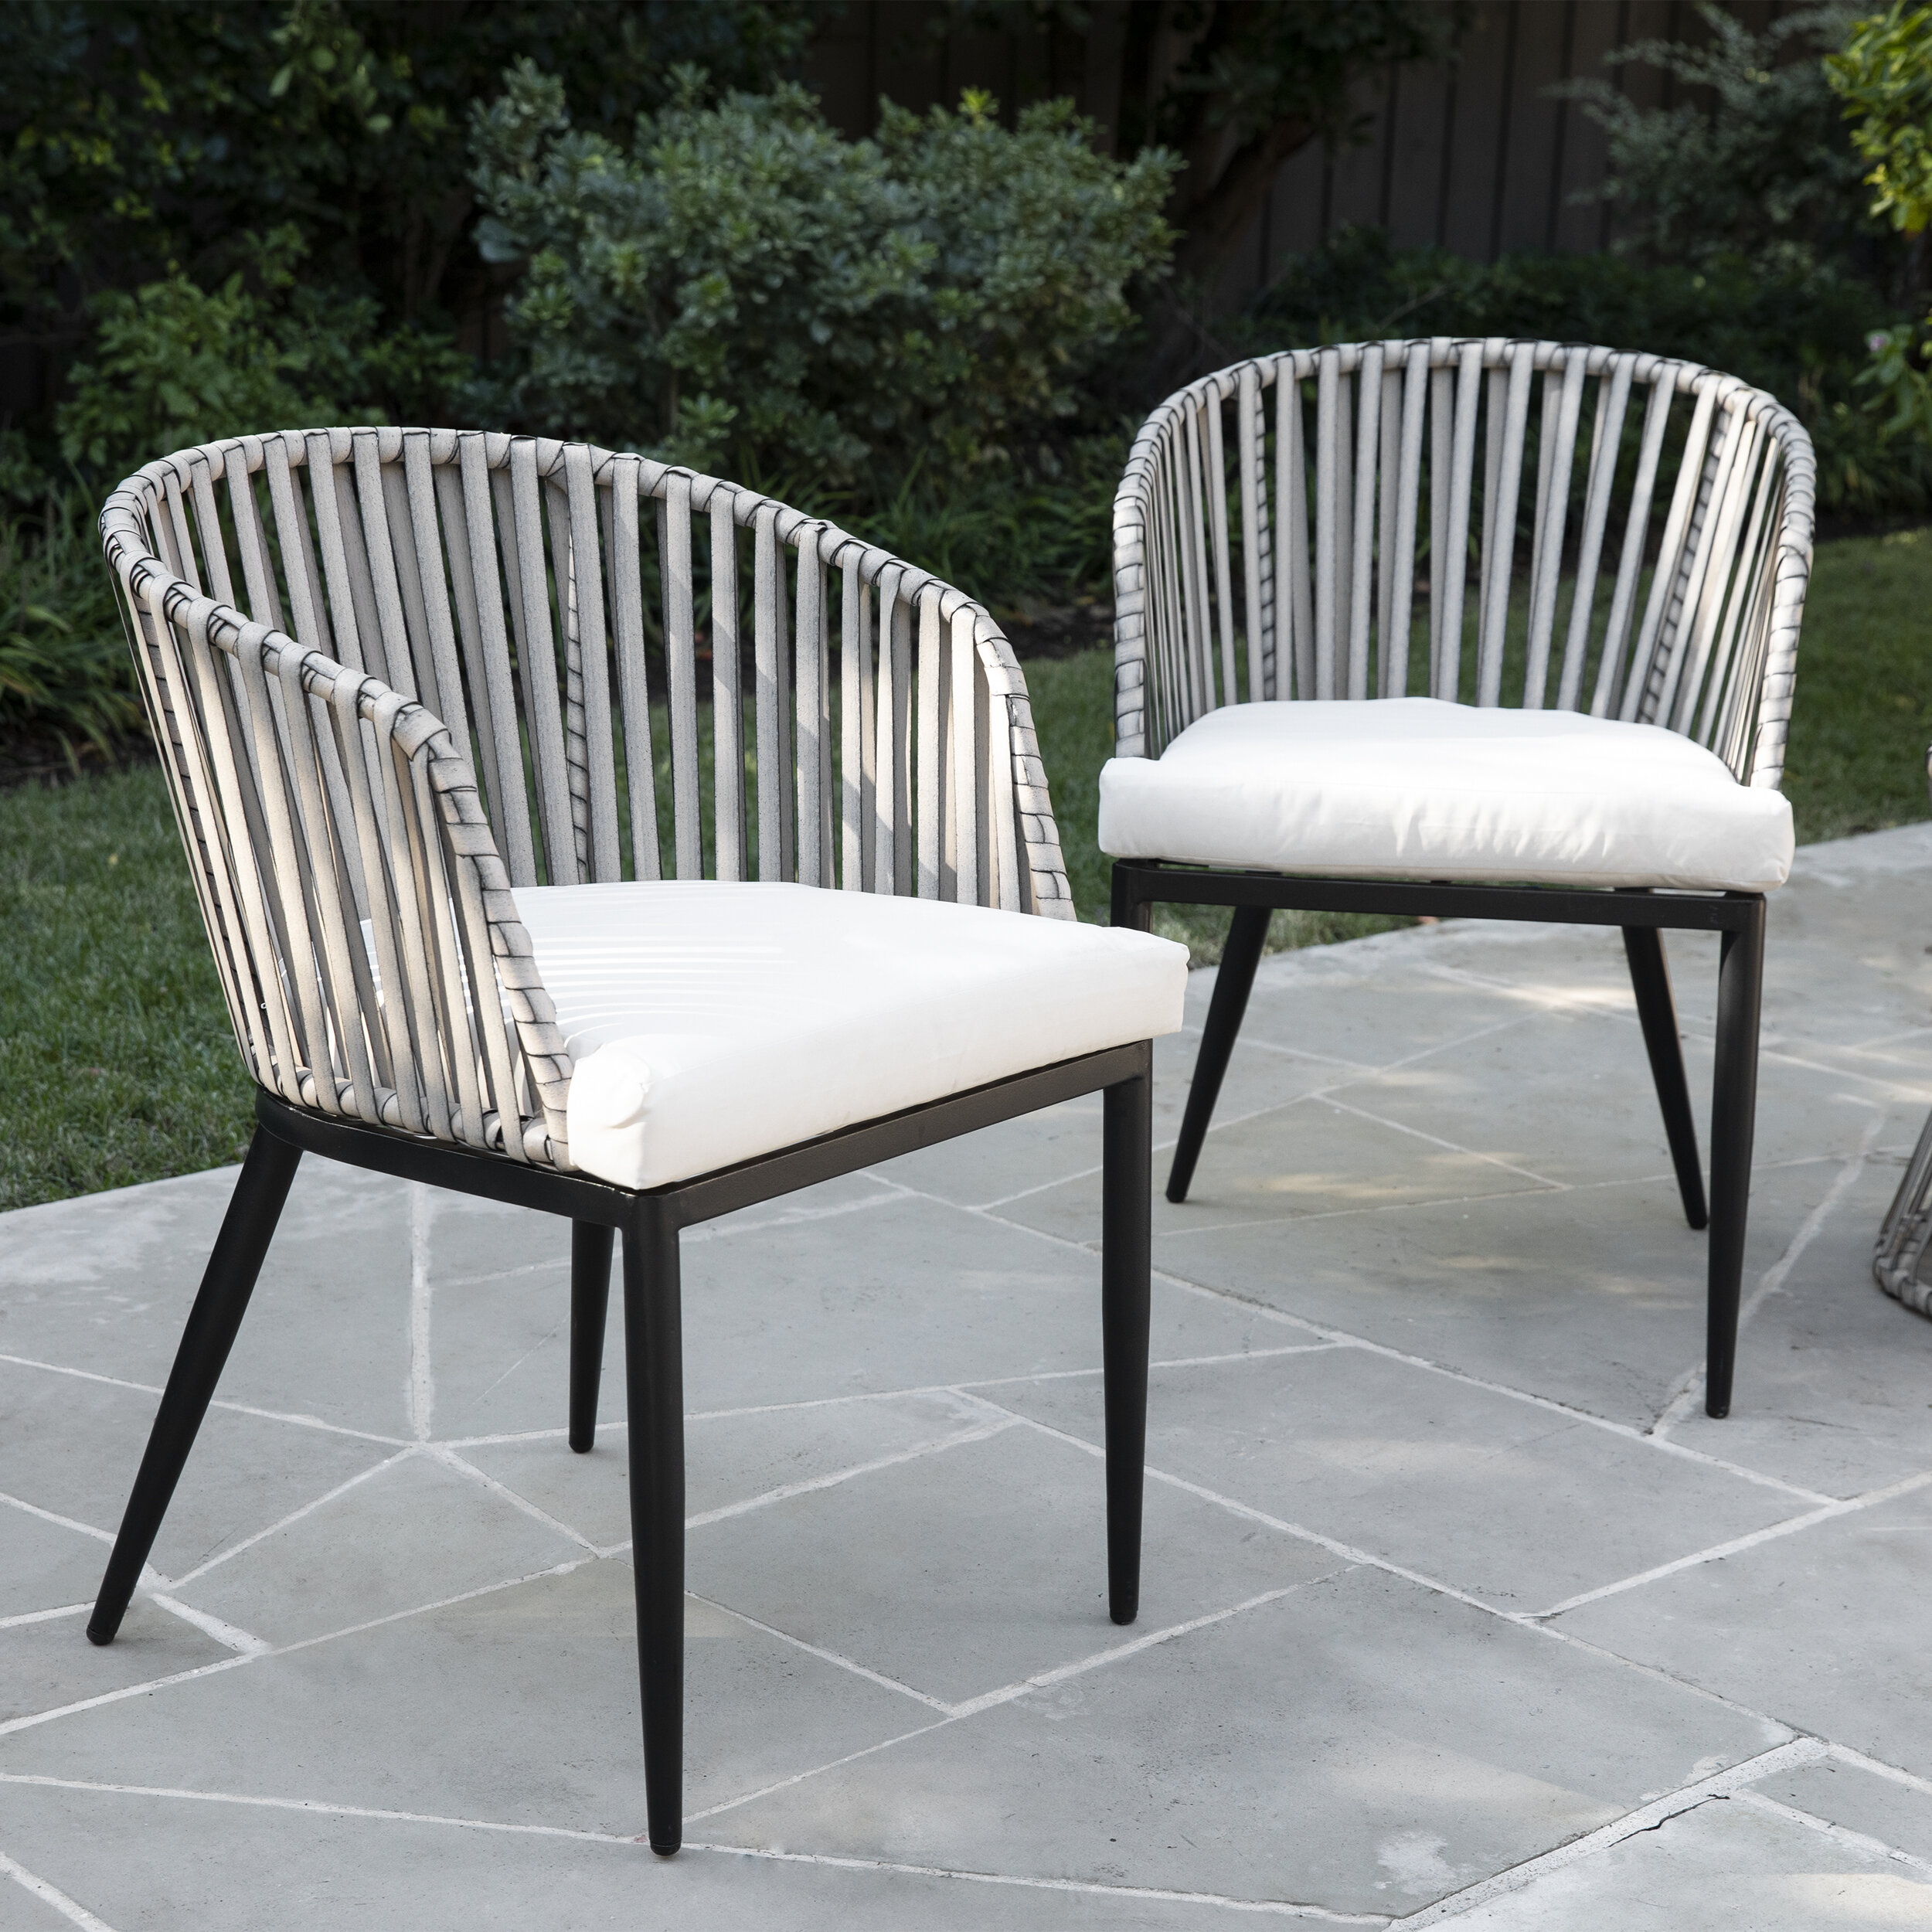 Melilani Patio Chair With Cushions